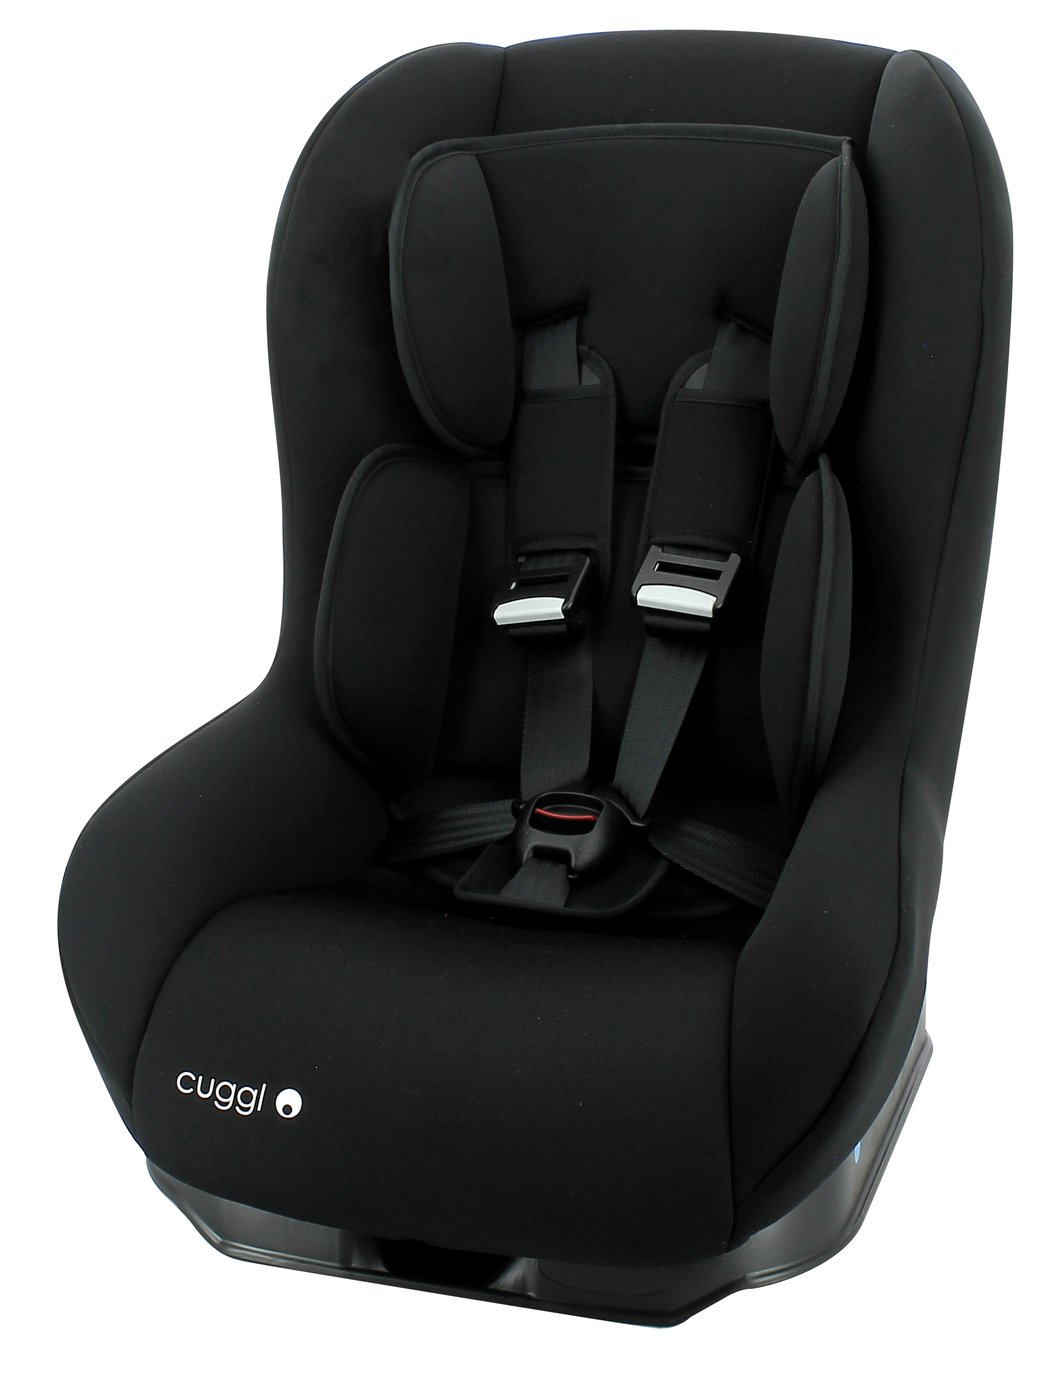 4 years Cuggl baby car seat black group 1 from 9 months in no accidents Mint